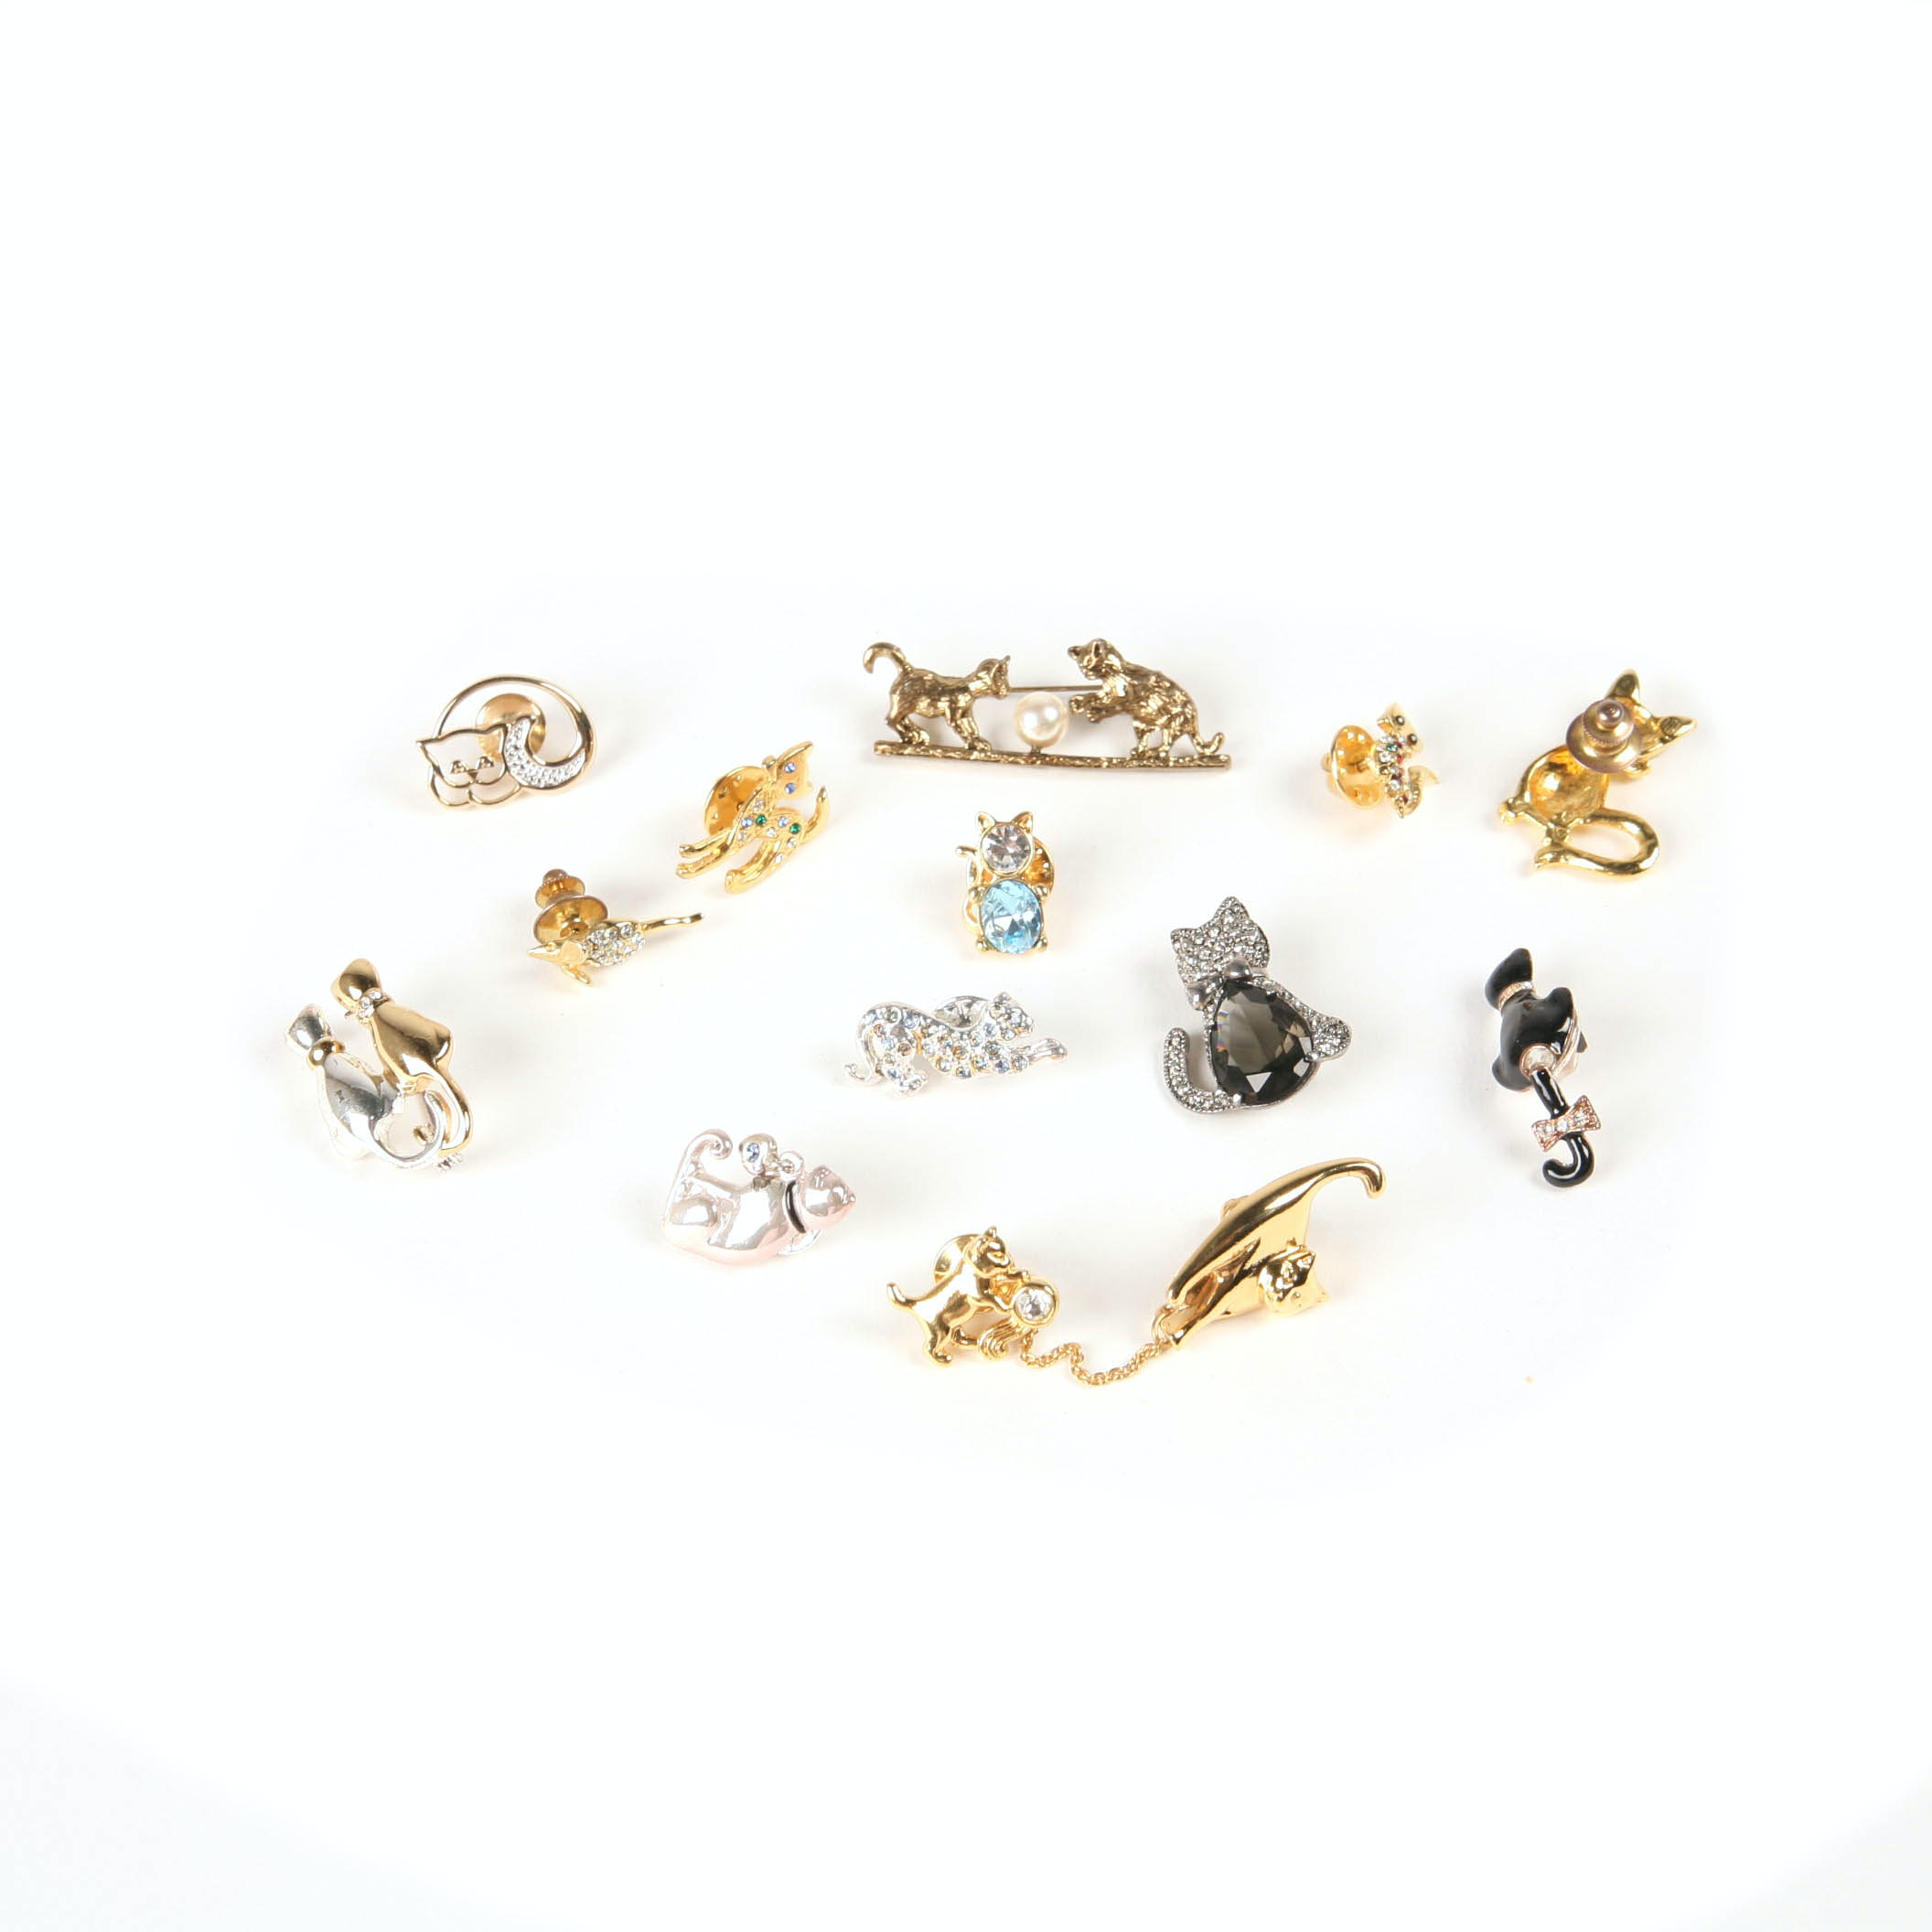 Collection of Vintage Cat Brooches Including Rhinestone